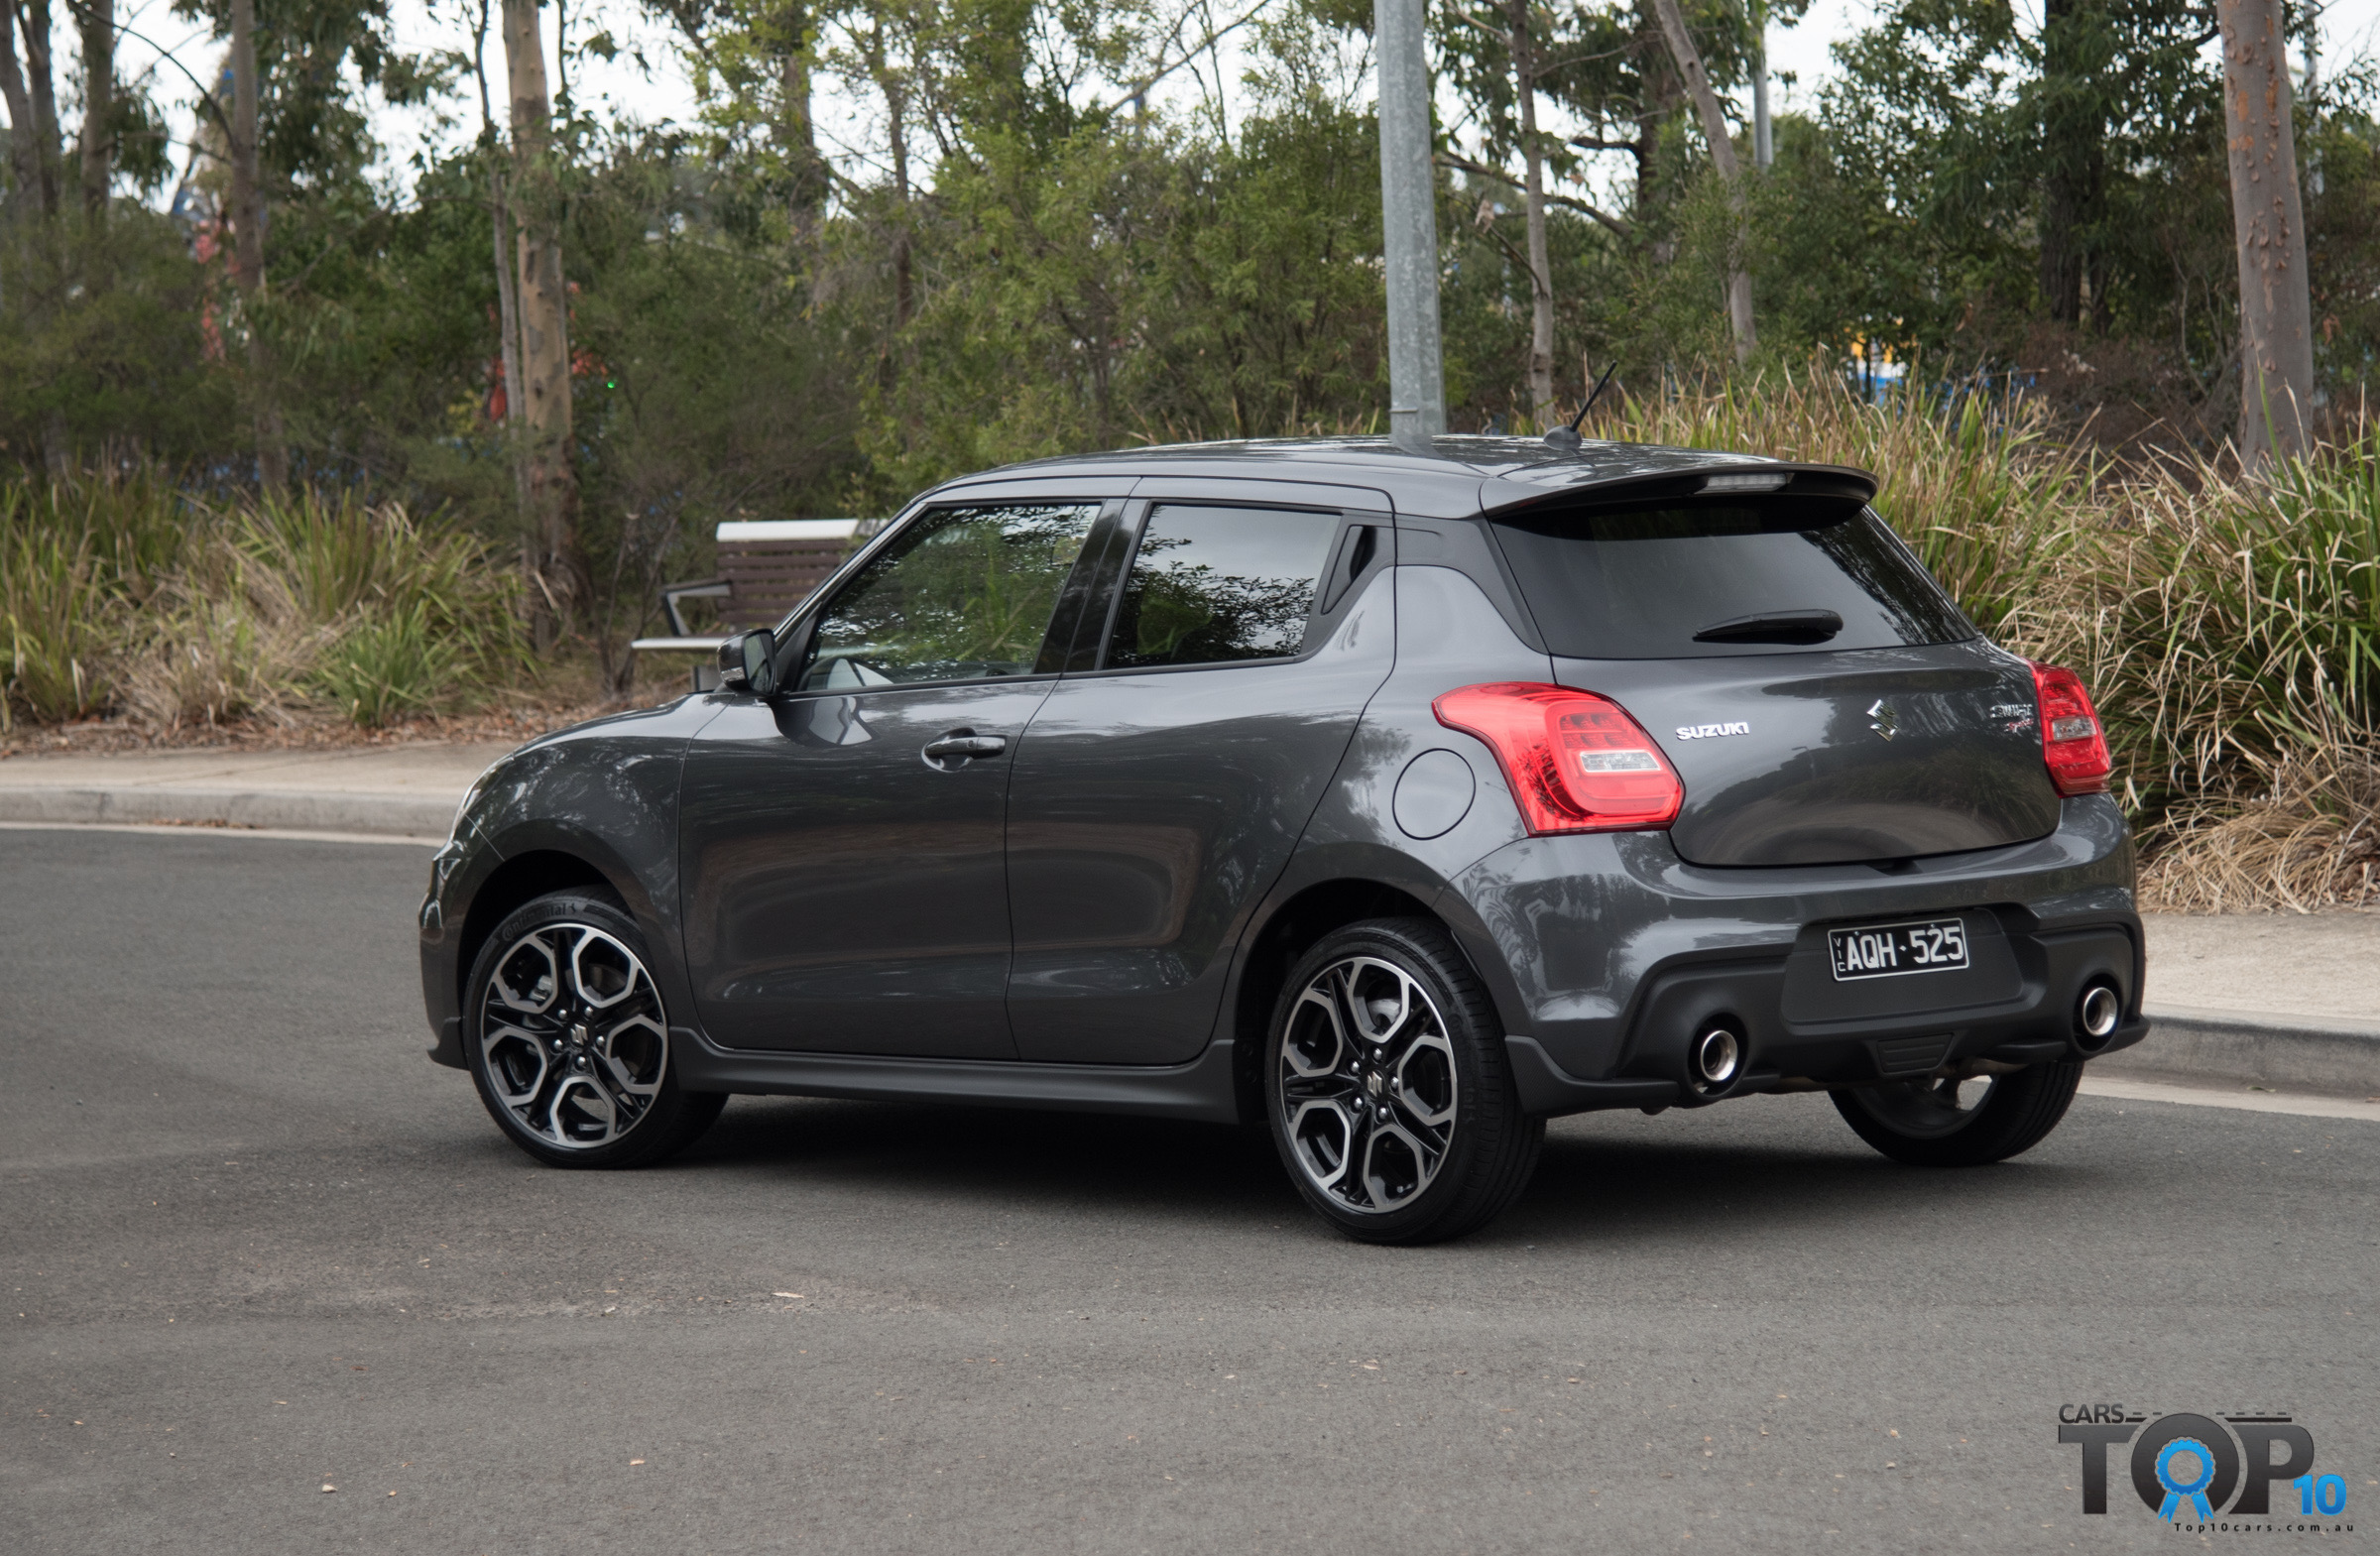 How Much Is A New Transmission >> 2018 Suzuki Swift Sport review | Top10Cars